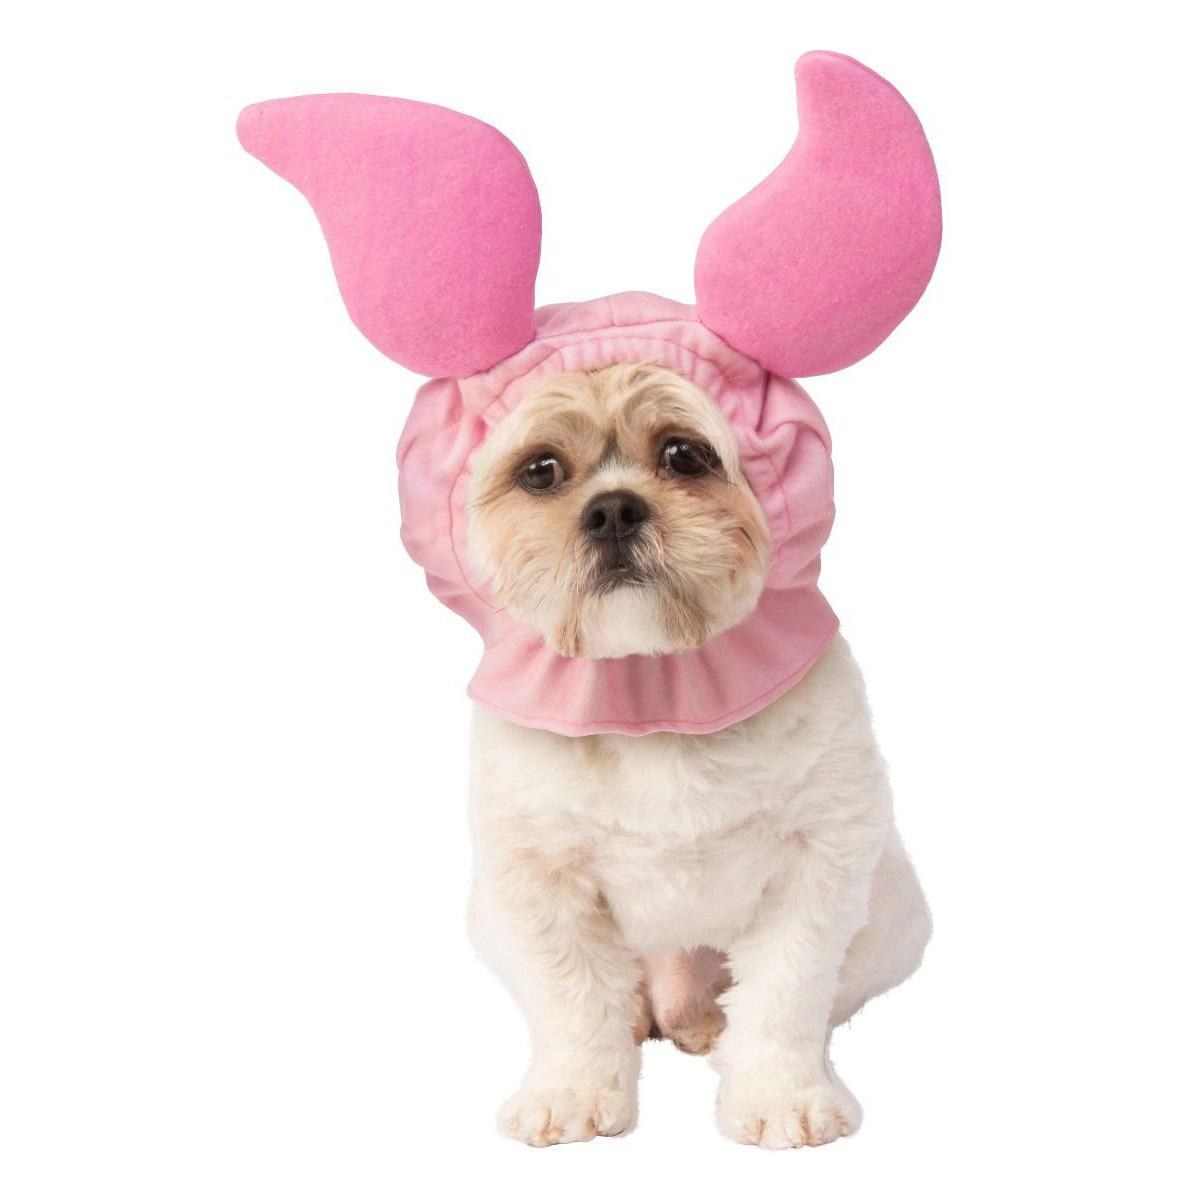 Winnie The Pooh Piglet Headpiece Dog Costume by Rubies